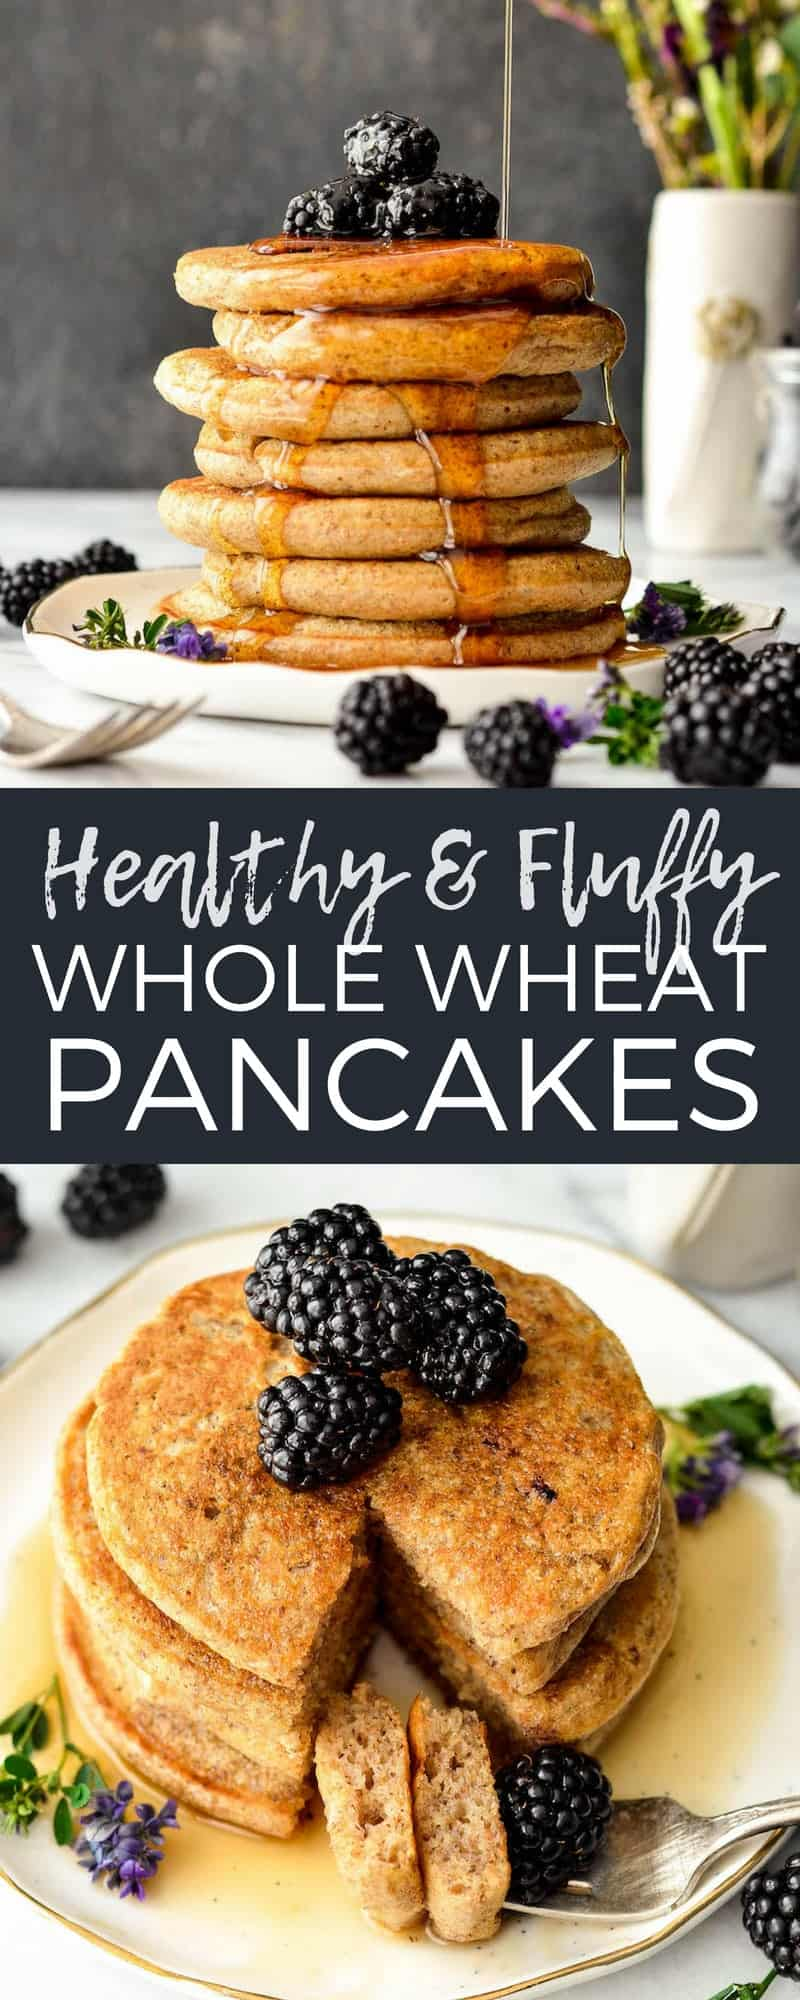 These Fluffy Whole Wheat Pancakes with ground flaxseed and Greek yogurt (or buttermilk) will be your new favorite, go-to breakfast recipe!  They are simple, healthy and insanely delicious! Plus they're freezer-friendly! #wholewheat #pancakes #healthybreakfast #healthypancakes